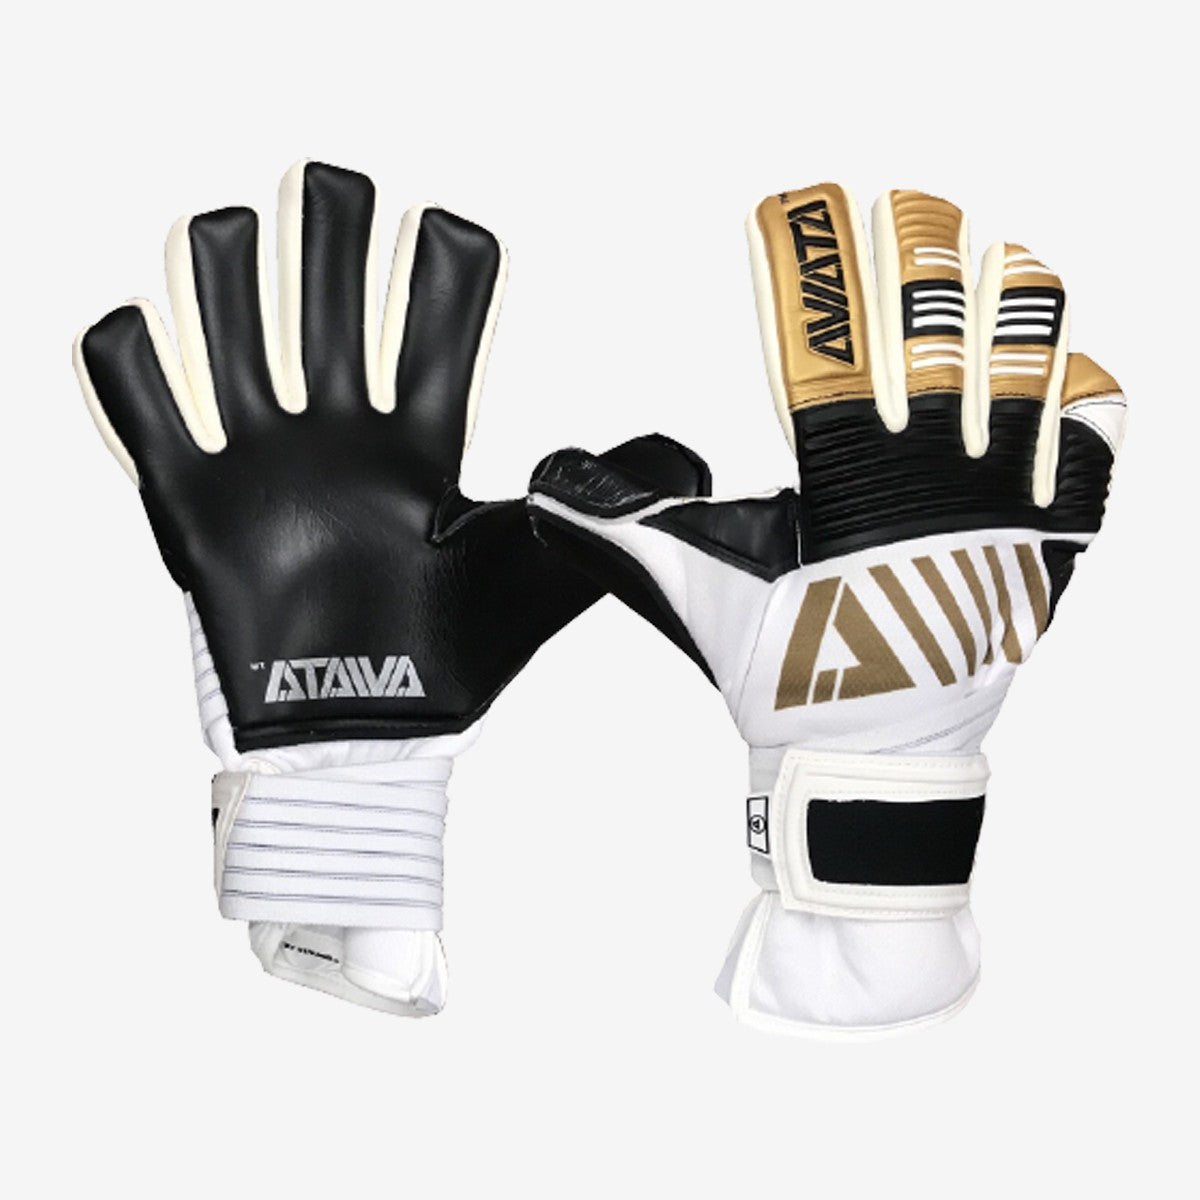 Stretta Oro Replica - White/Gold/Black